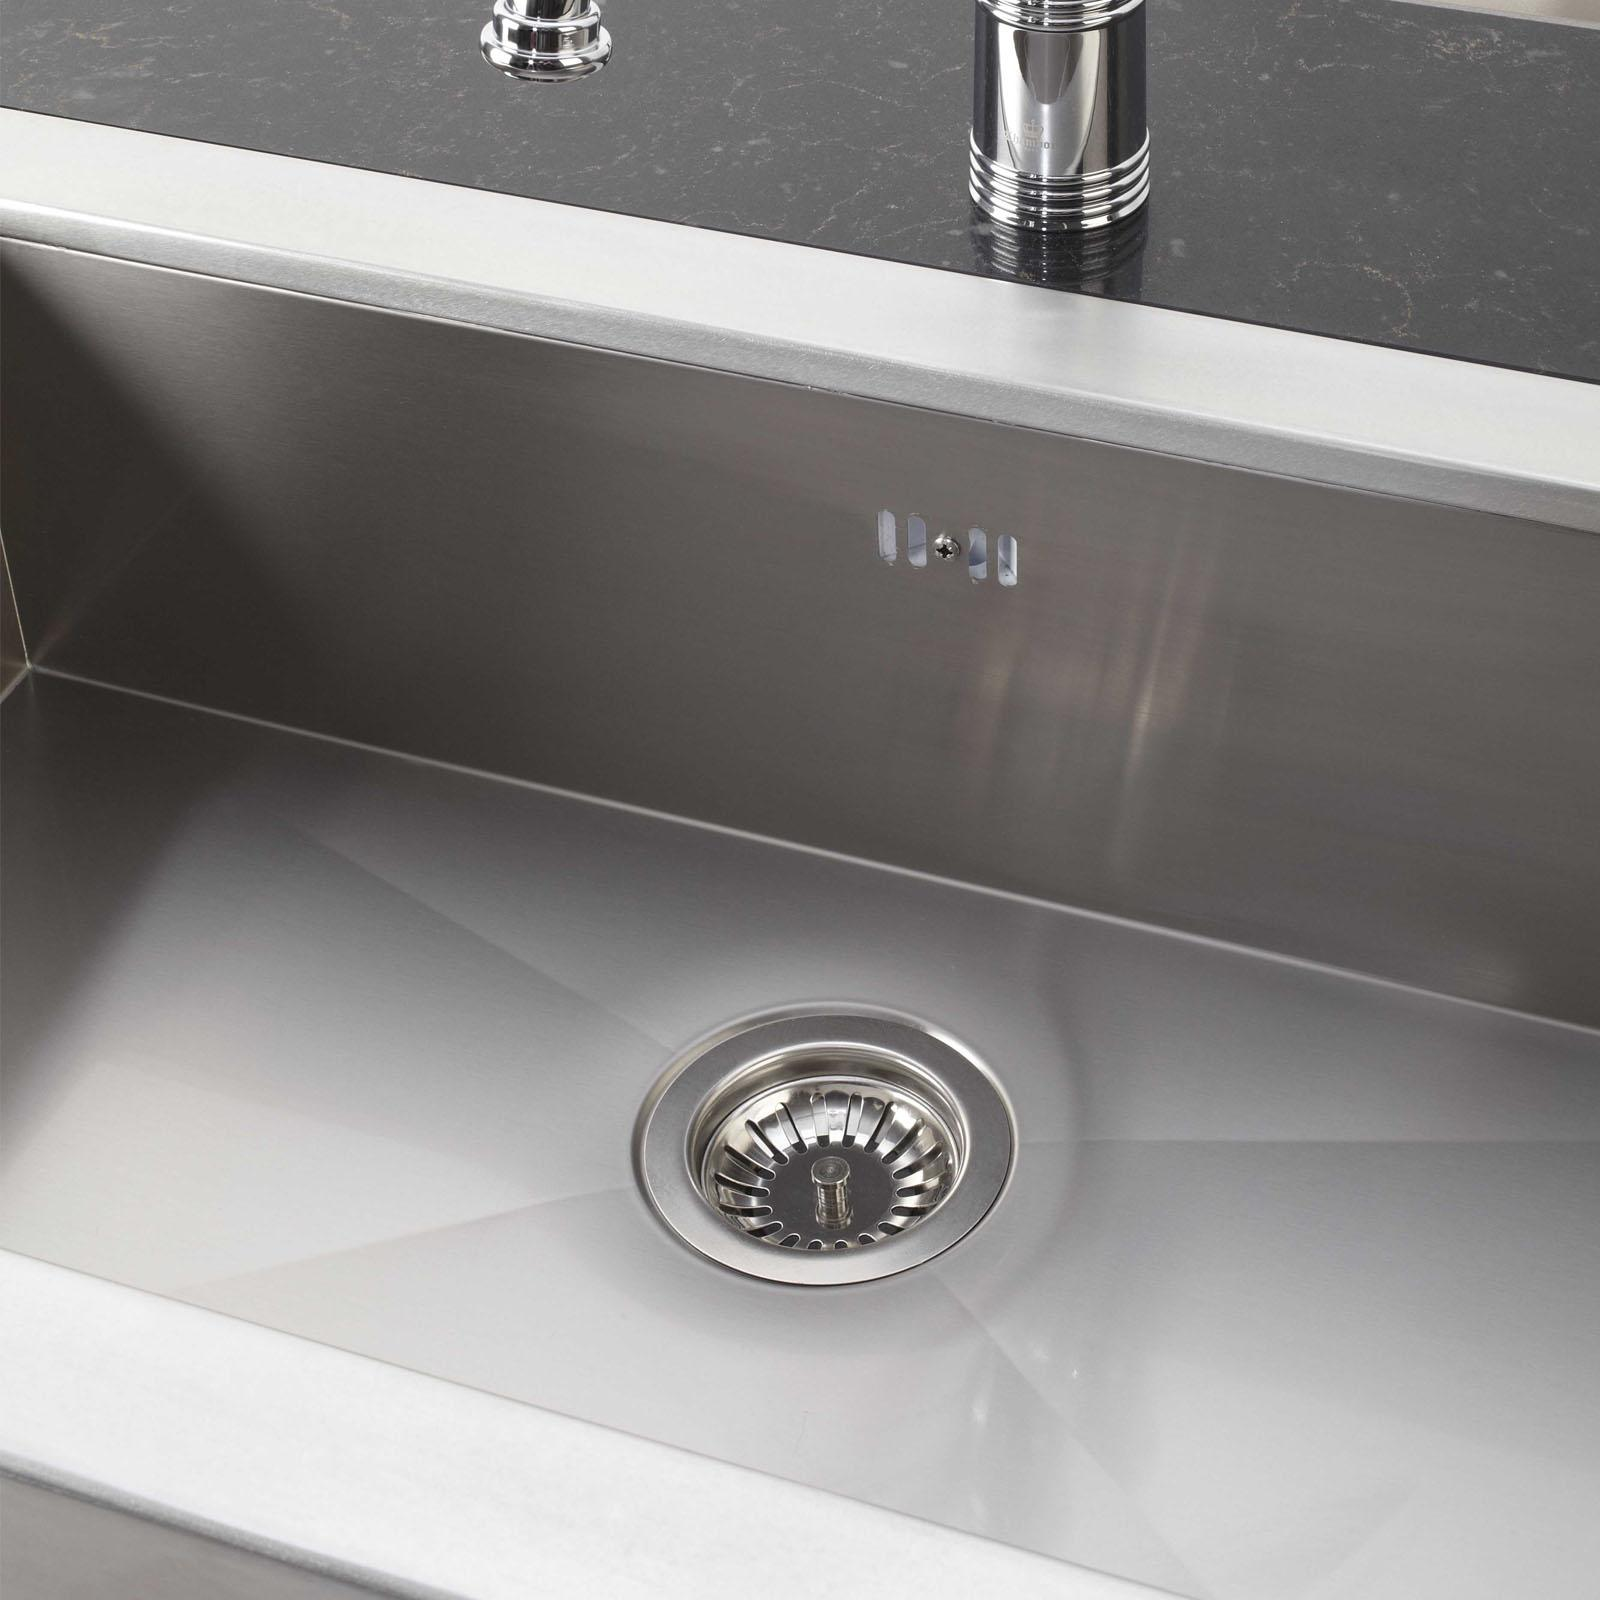 High-quality sink Napoléon - single bowl, pewter - ambience 2